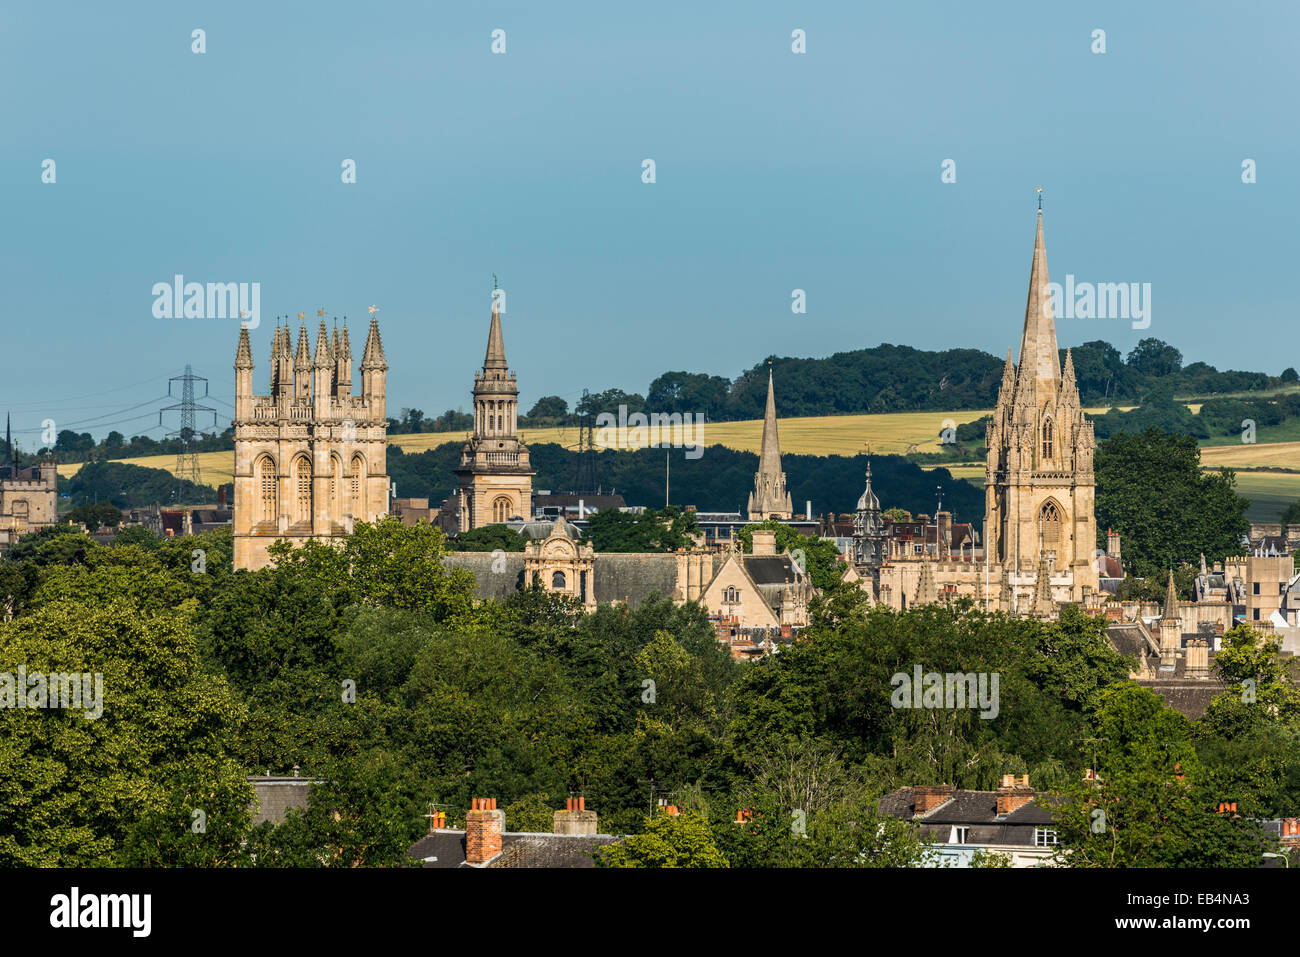 The dreaming spires of Oxford University including Lincoln College, University Church of St Mary and Merton College - Stock Image